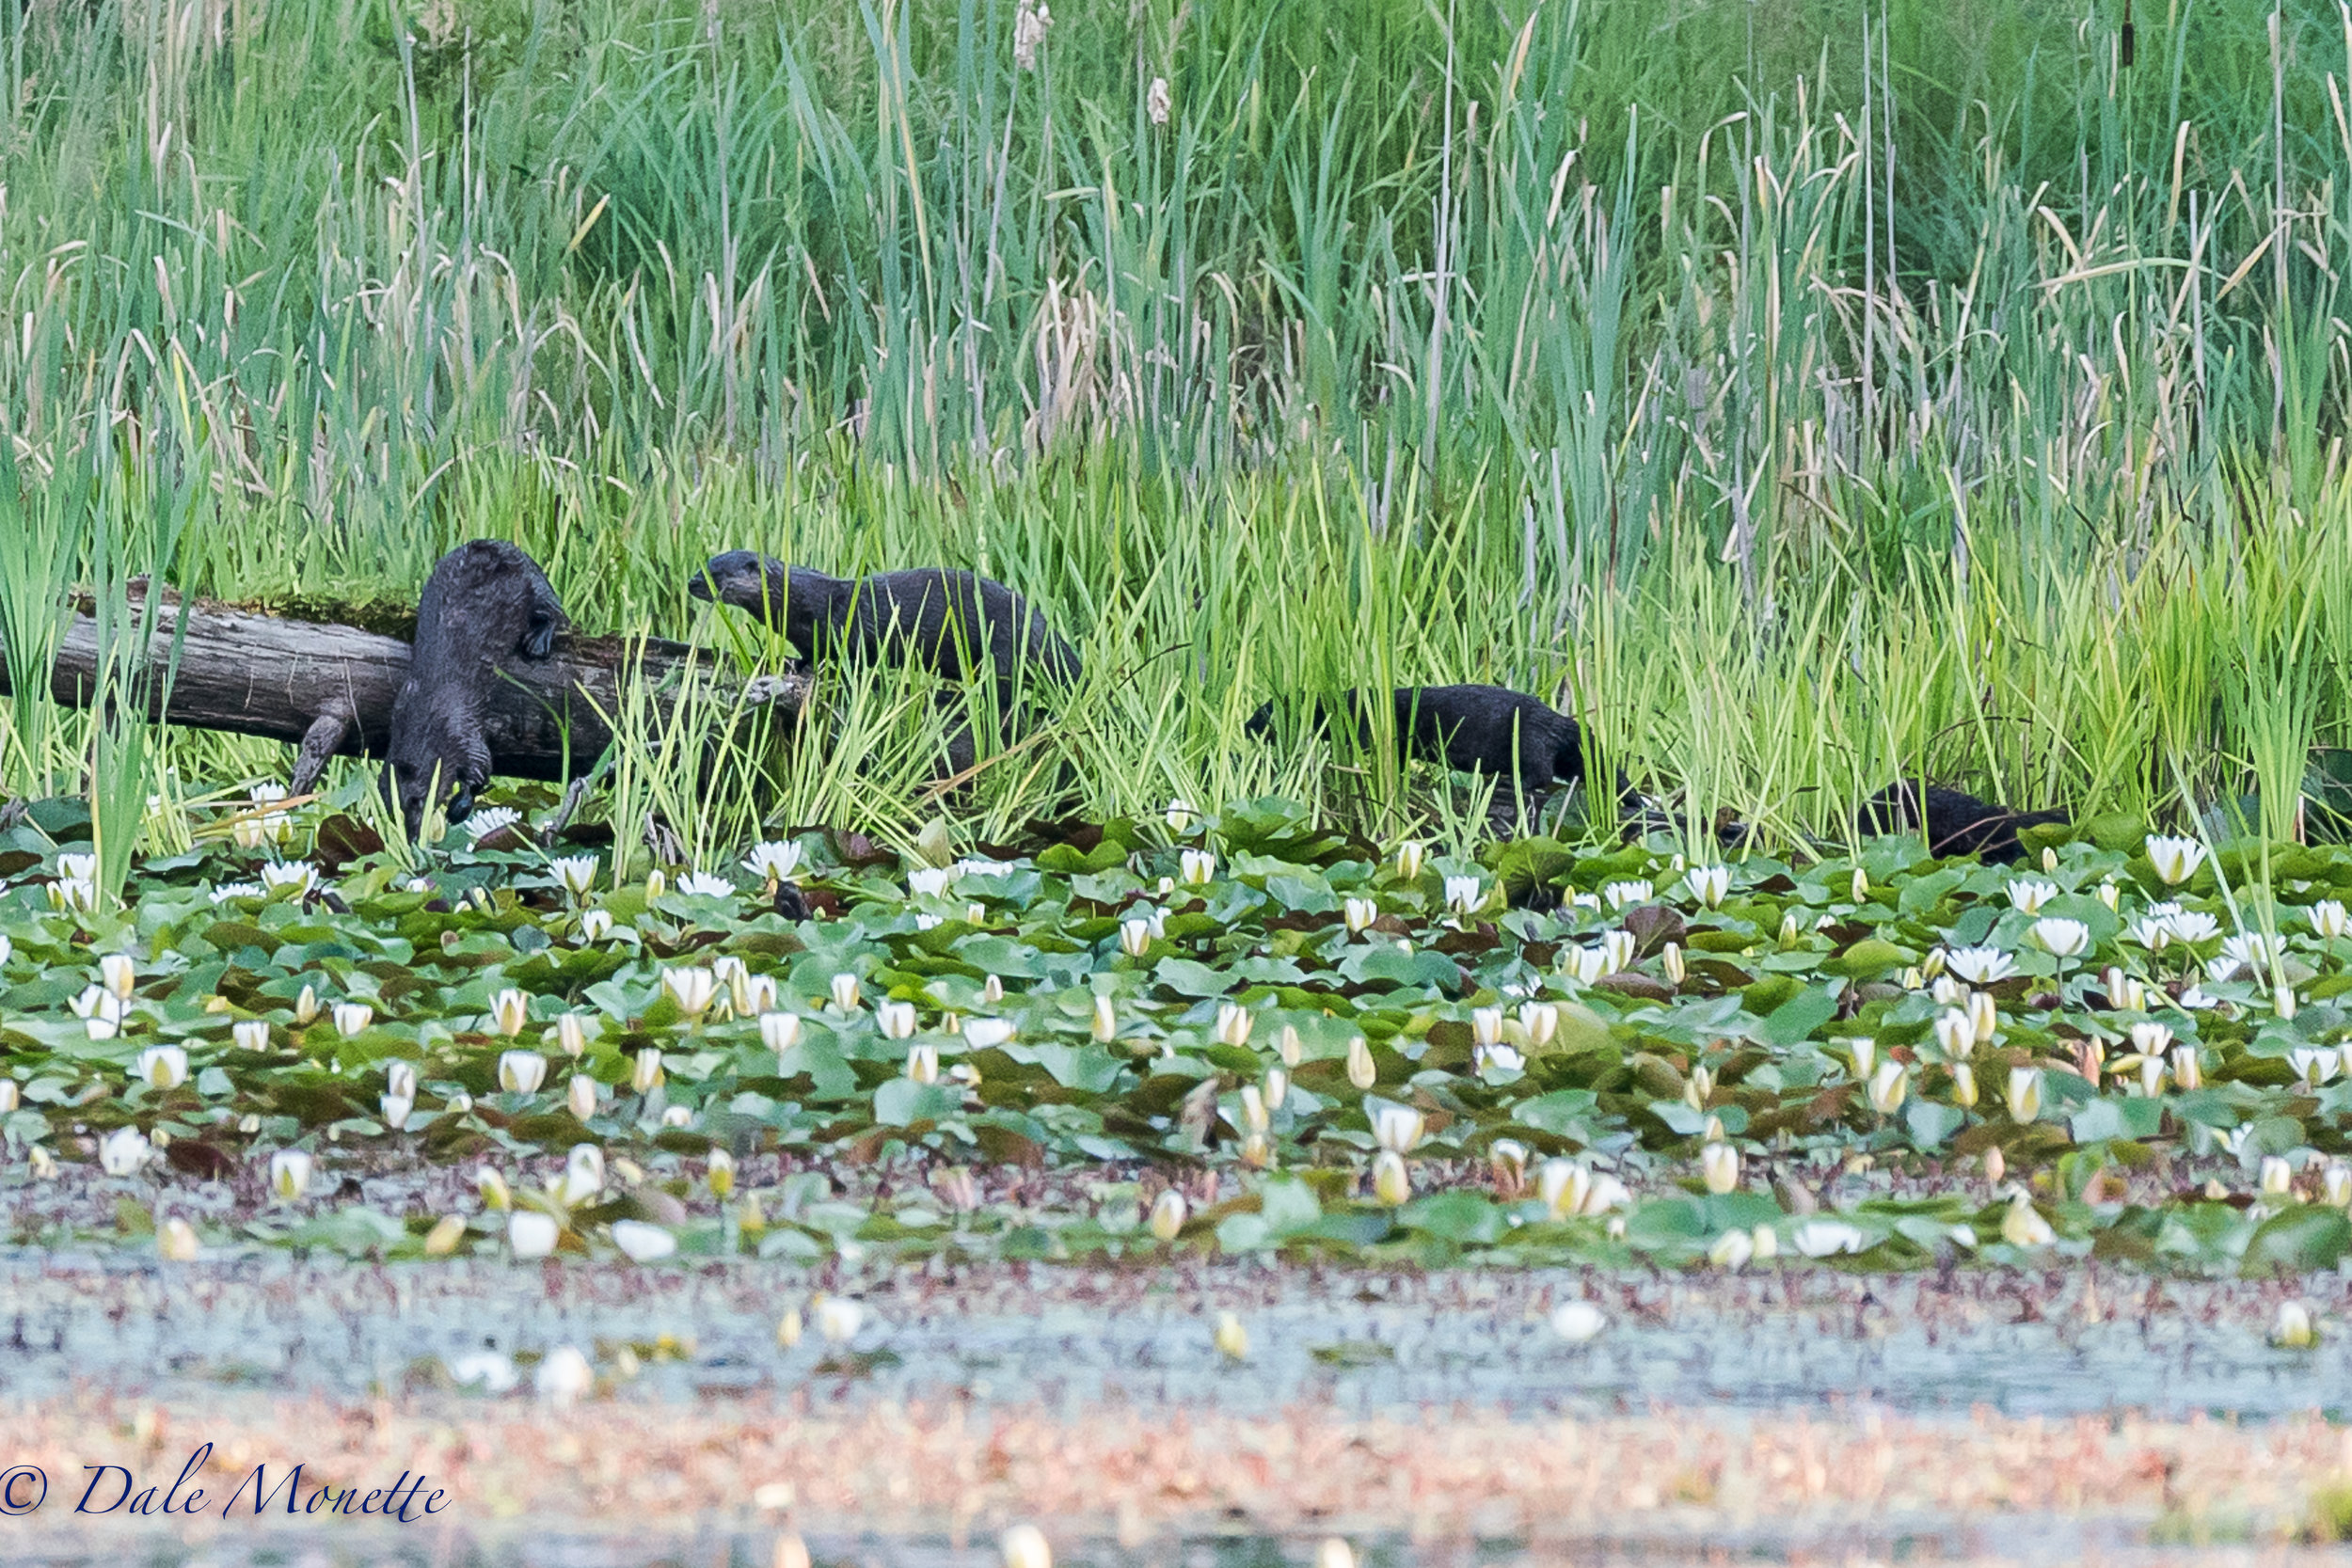 (Now kids, this is how we jump off a log) I found this family of otters this morning exploring the beaver pond they were learning to fish in. Northern river otters always crack me up watching them and kits are even funnier ! 7/23/27